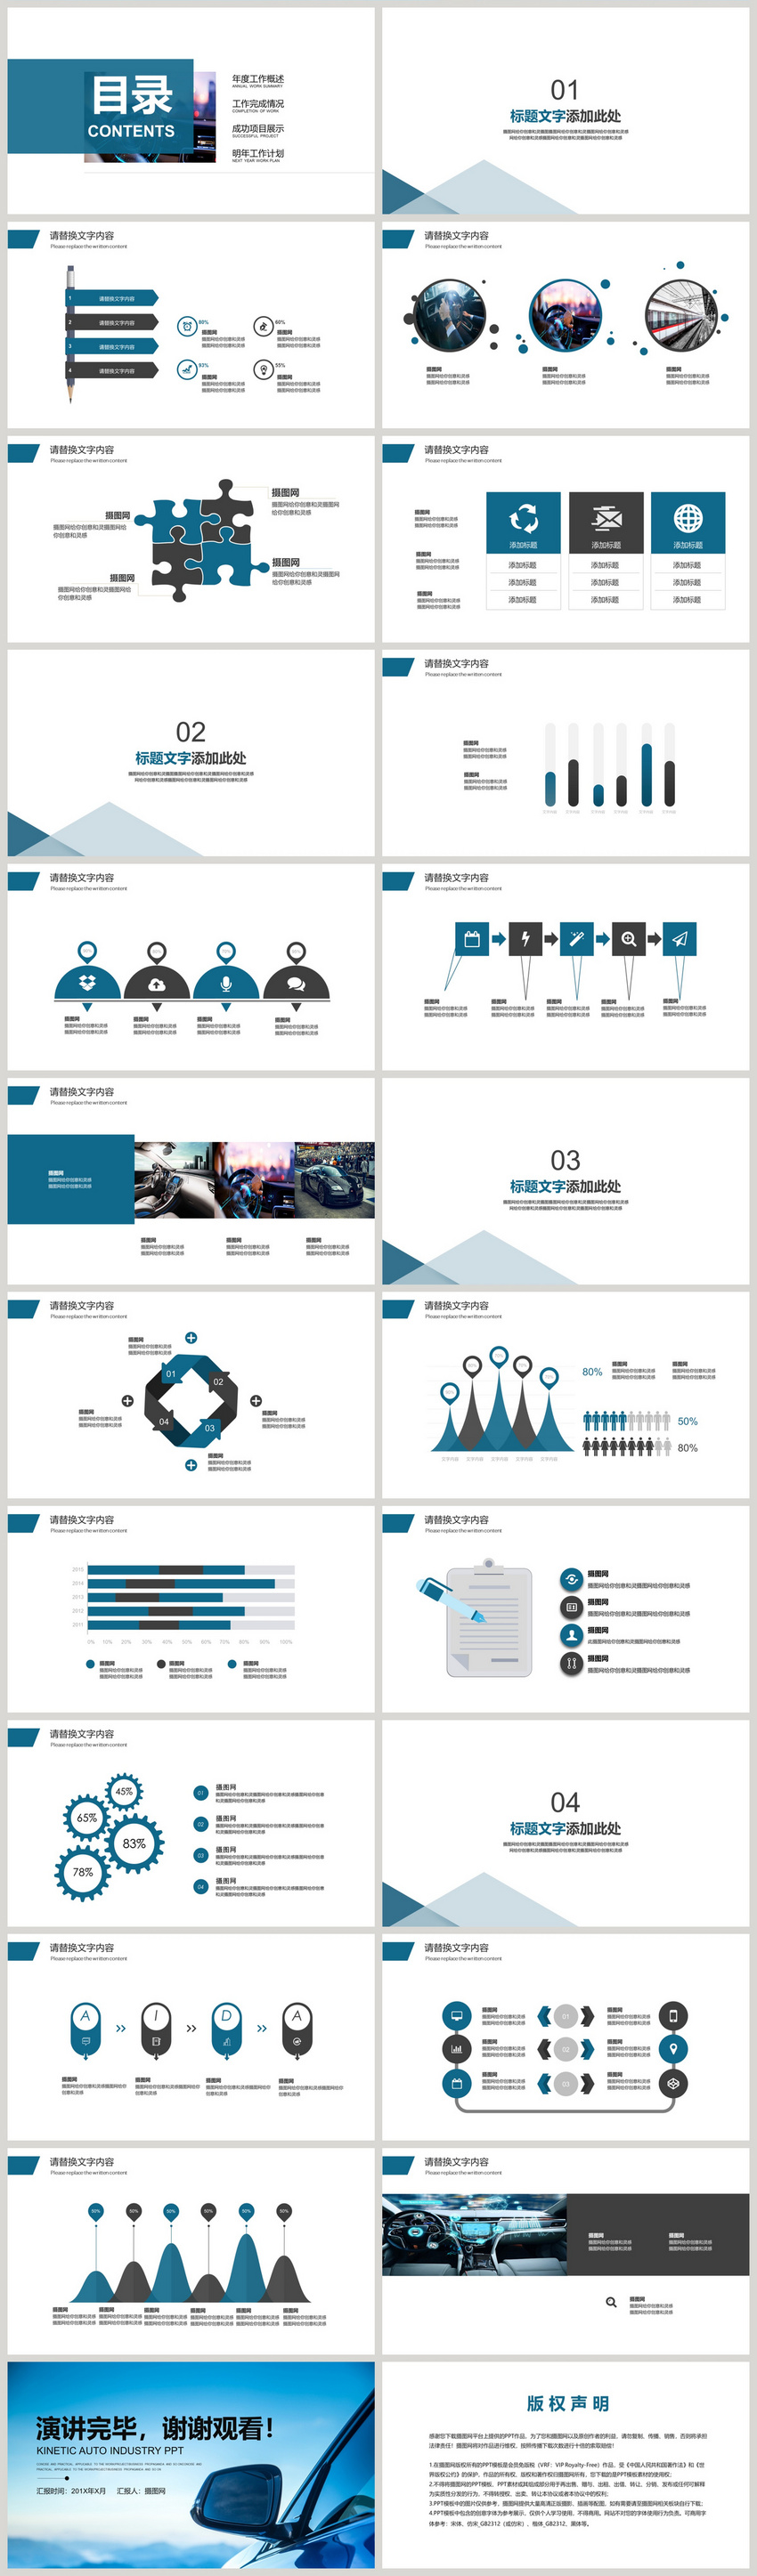 Auto sales summary marketing report ppt template powerpoint